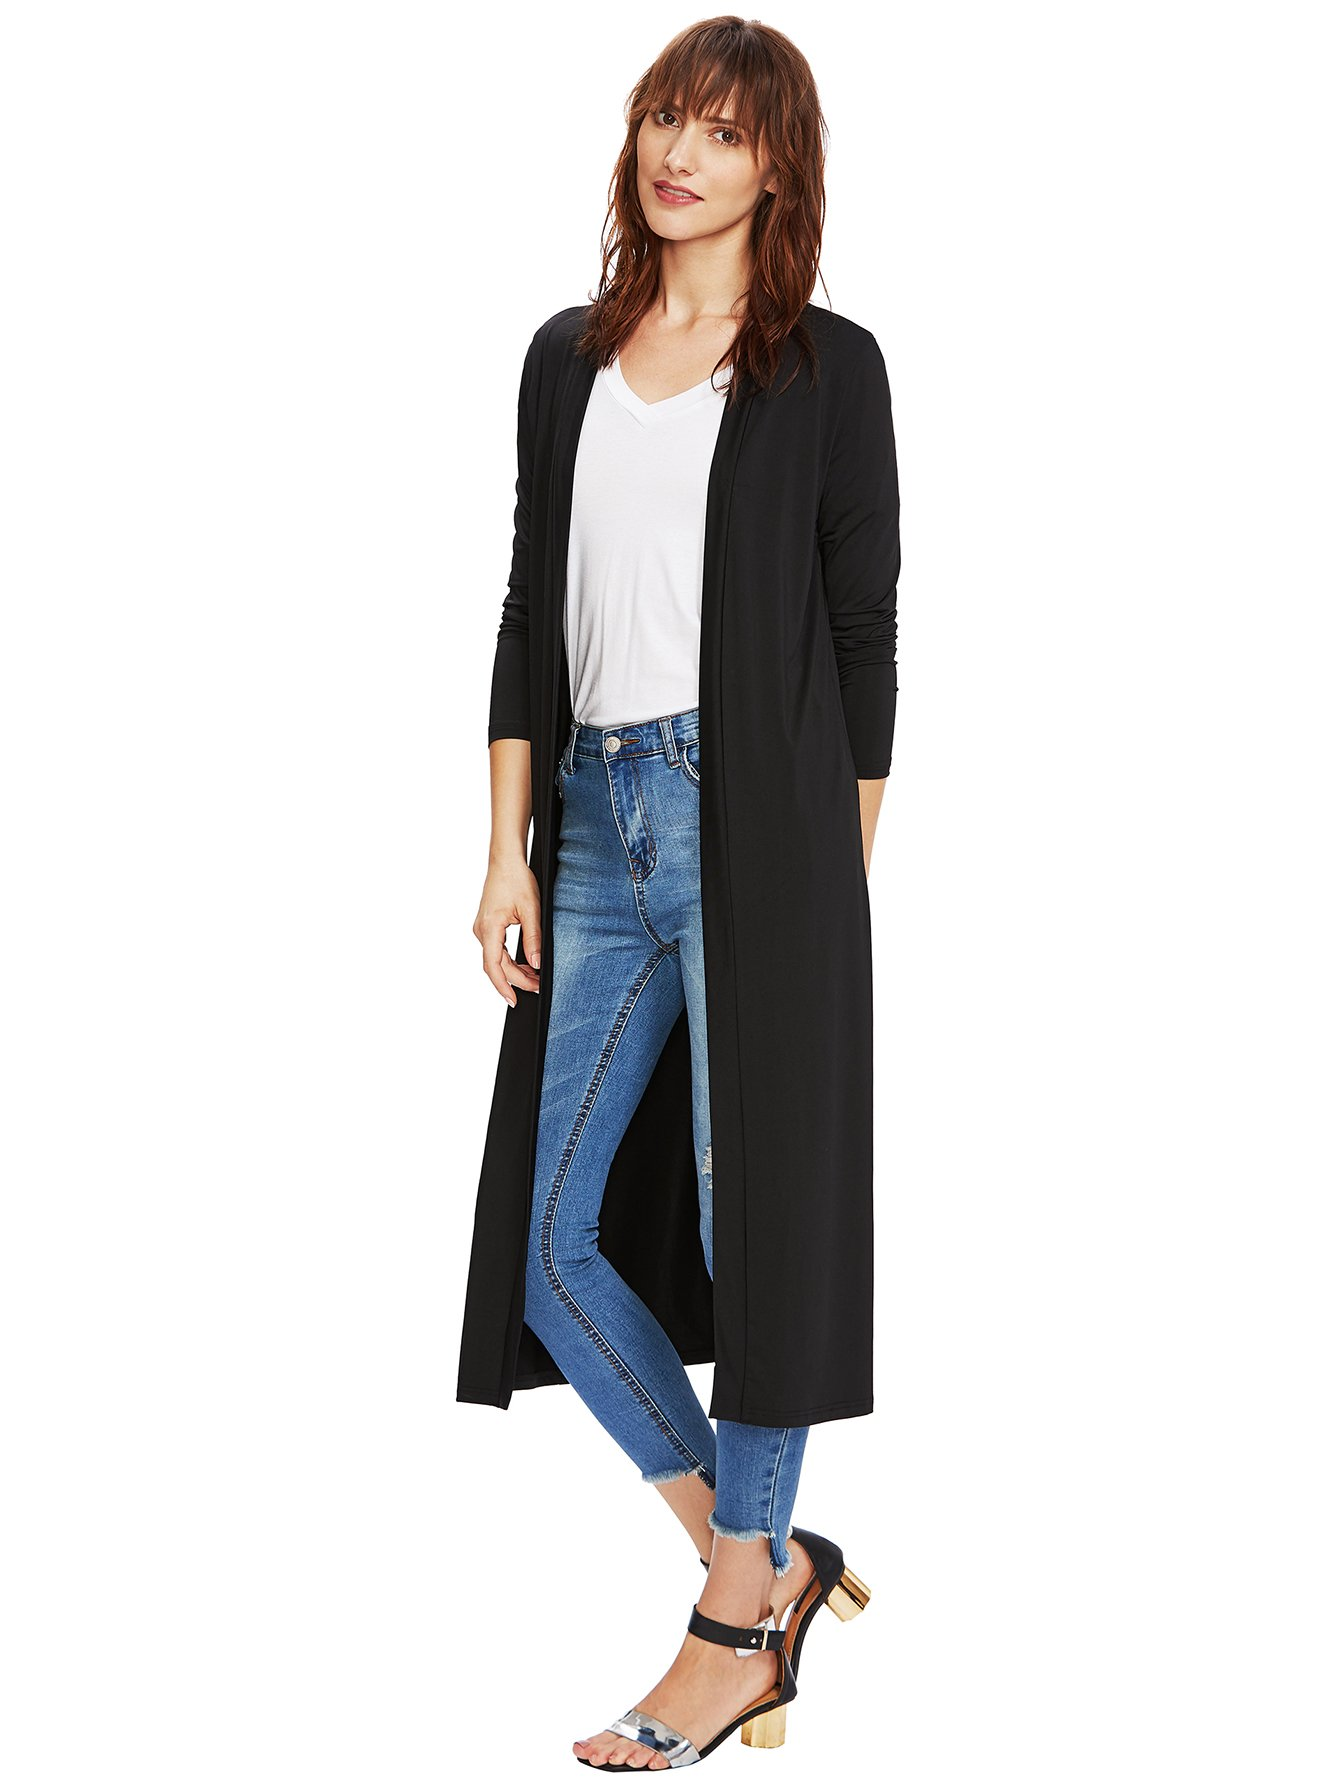 Verdusa Women's Long Sleeve Open Front Long Maxi Cardigan Longline Duster Coat Black M